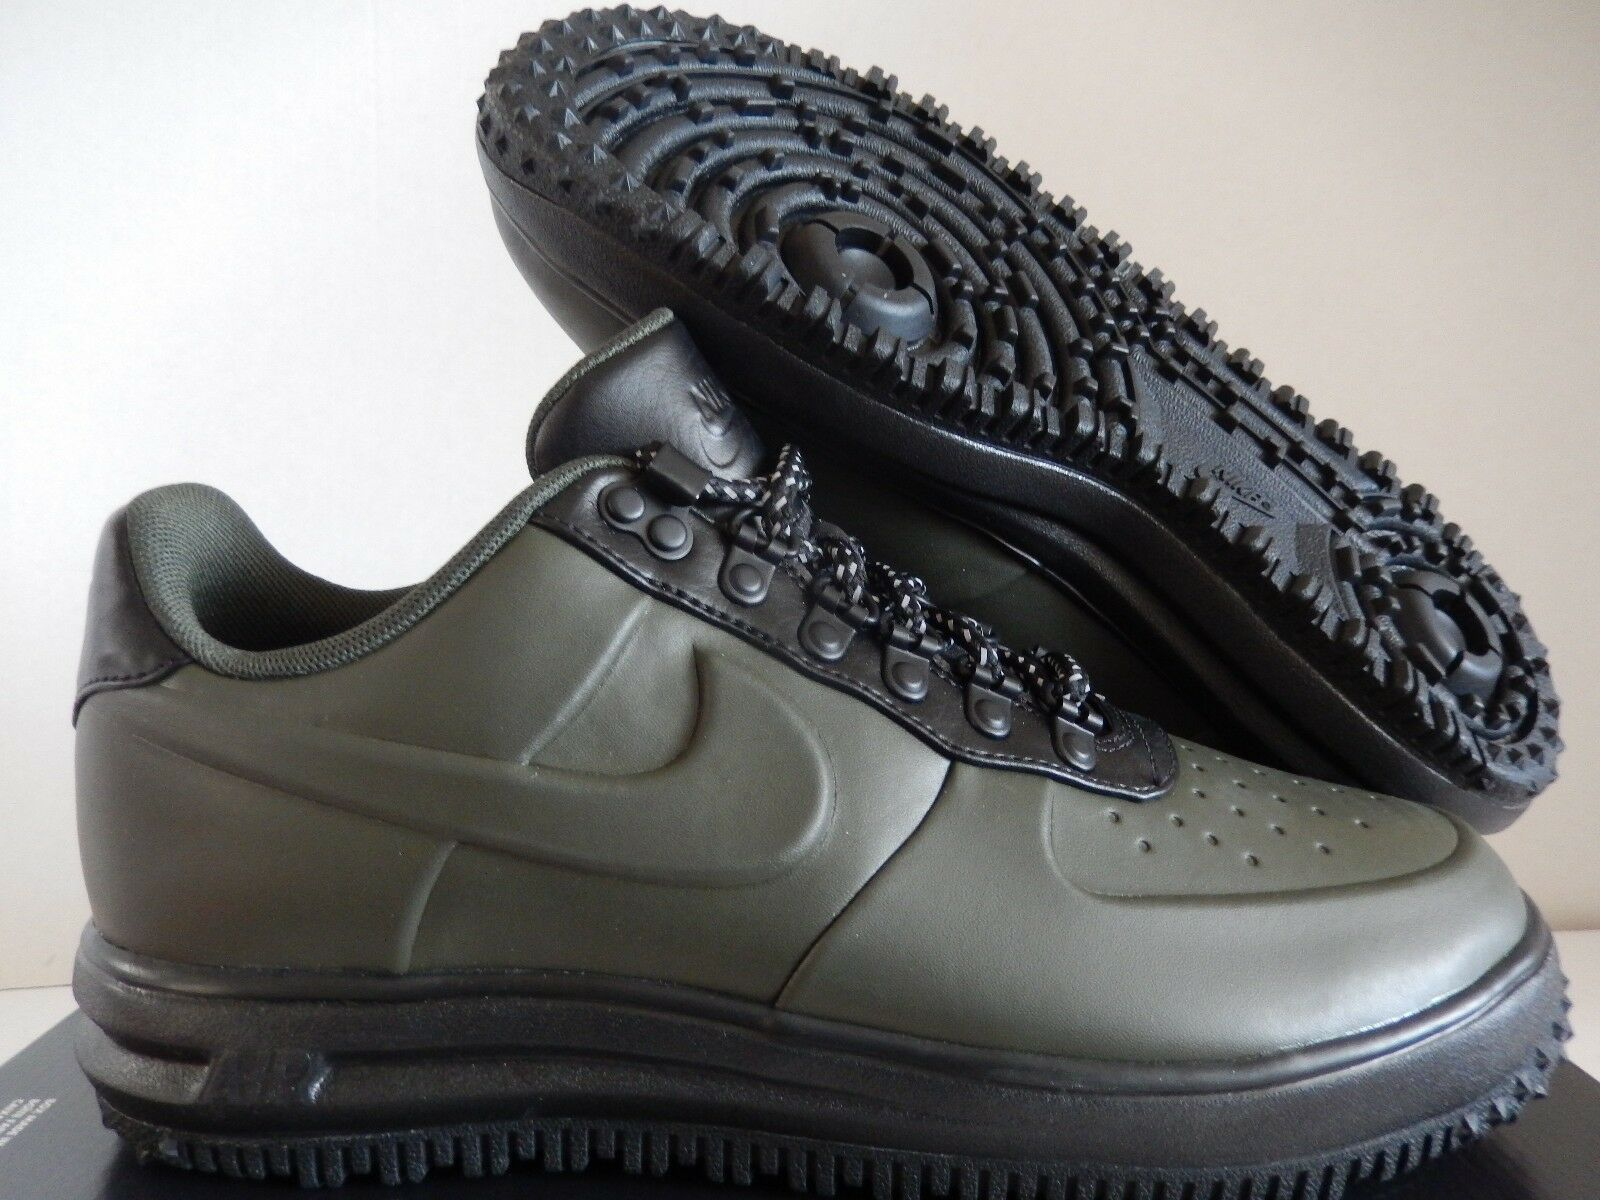 NIKE LUNAR FORCE 1 LF1 DUCKBOOT LOW SEQUOIA GREEN SZ 13 [AA1125-300]